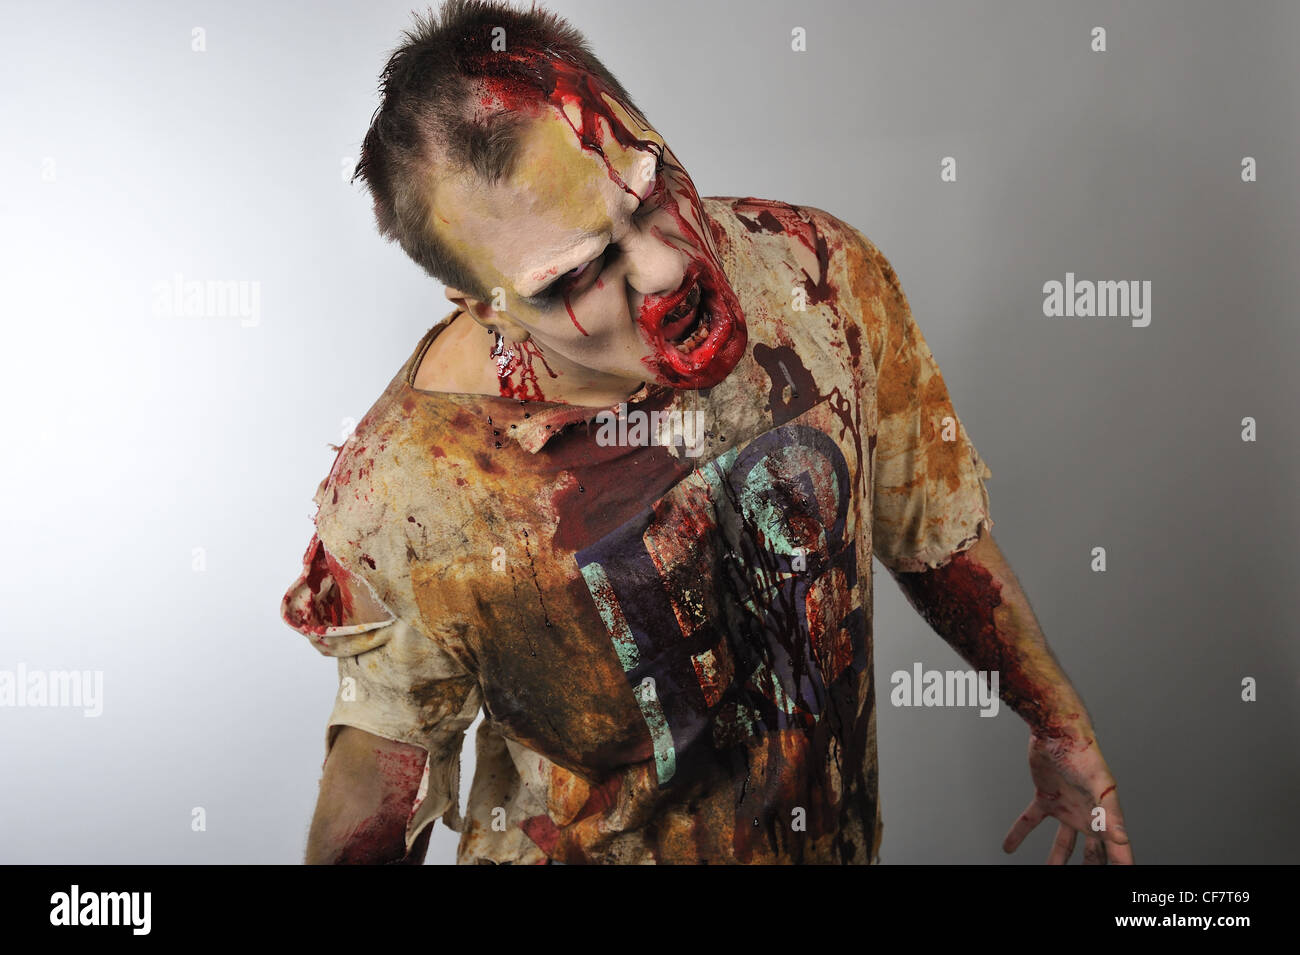 A zombie roaring at you - Stock Image